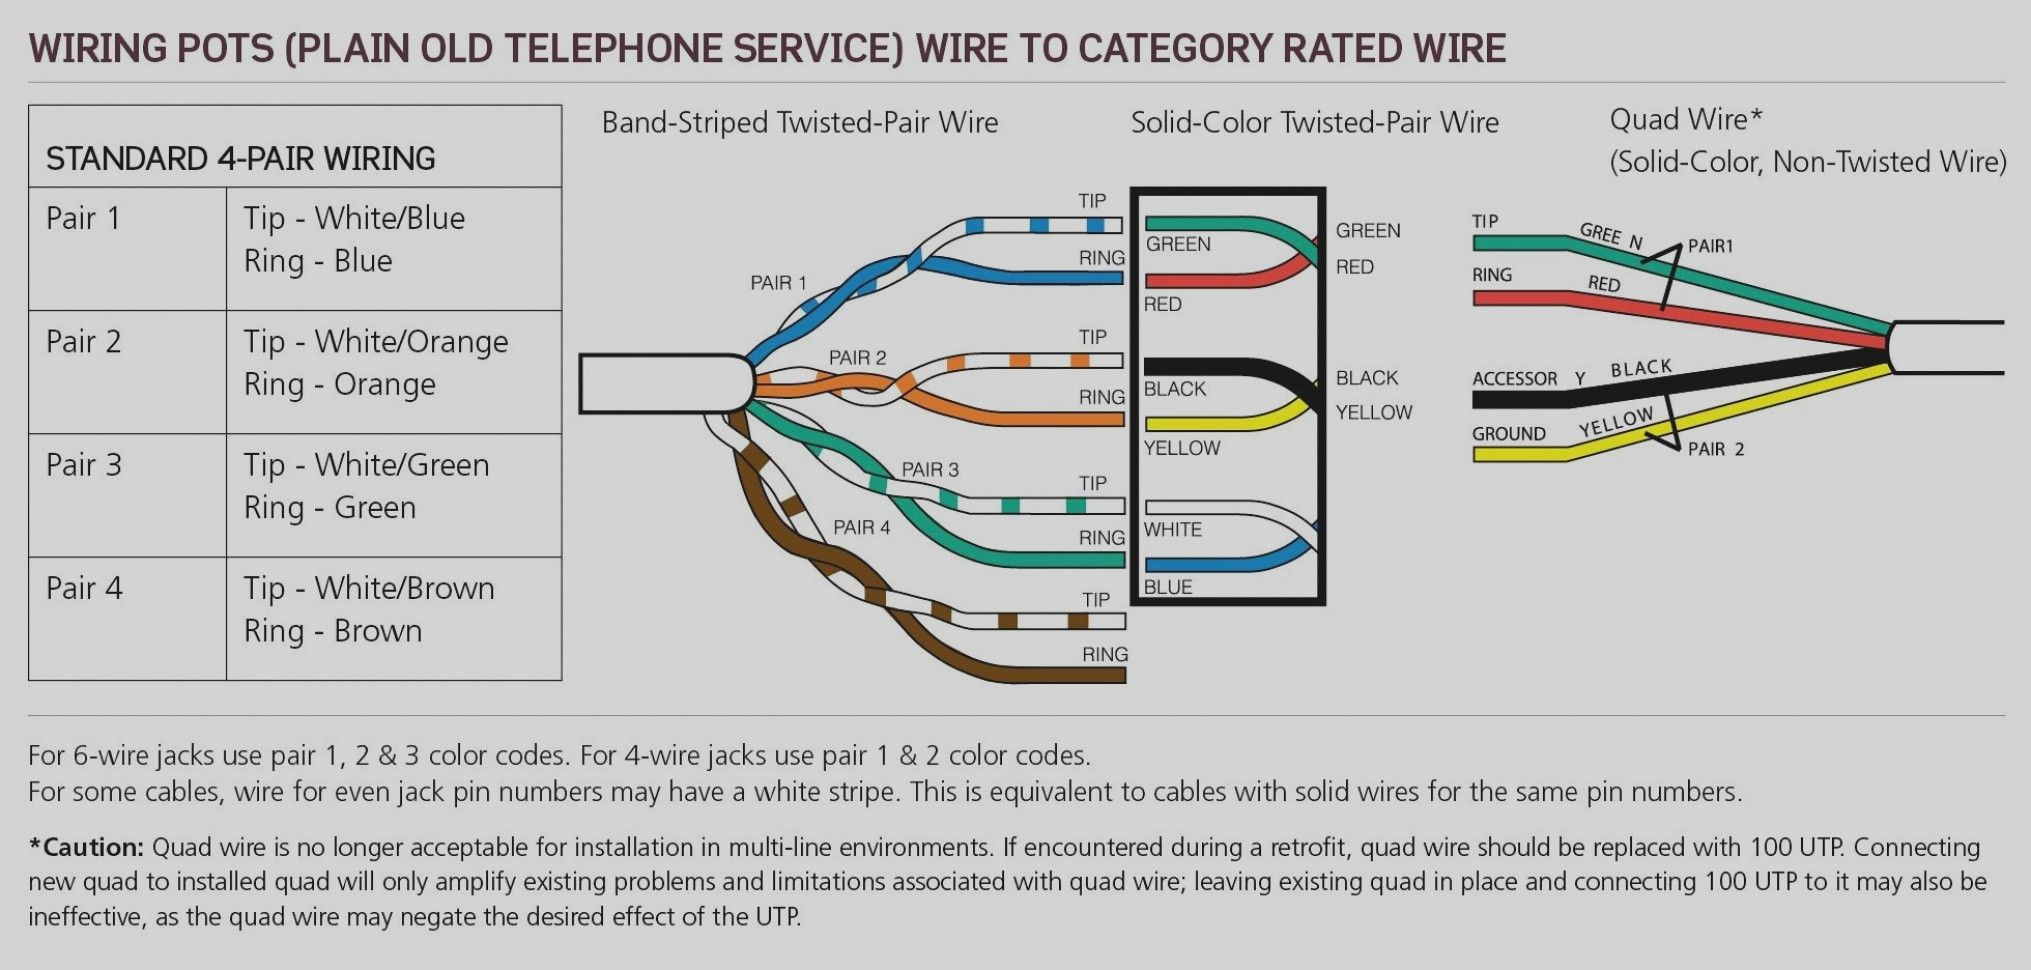 New Wiring Codes Diagram Wiringdiagram Diagramming Diagramm Visuals Visualisation Graphical Check More At Https Th Phone Jack Telephone Jack Telephone